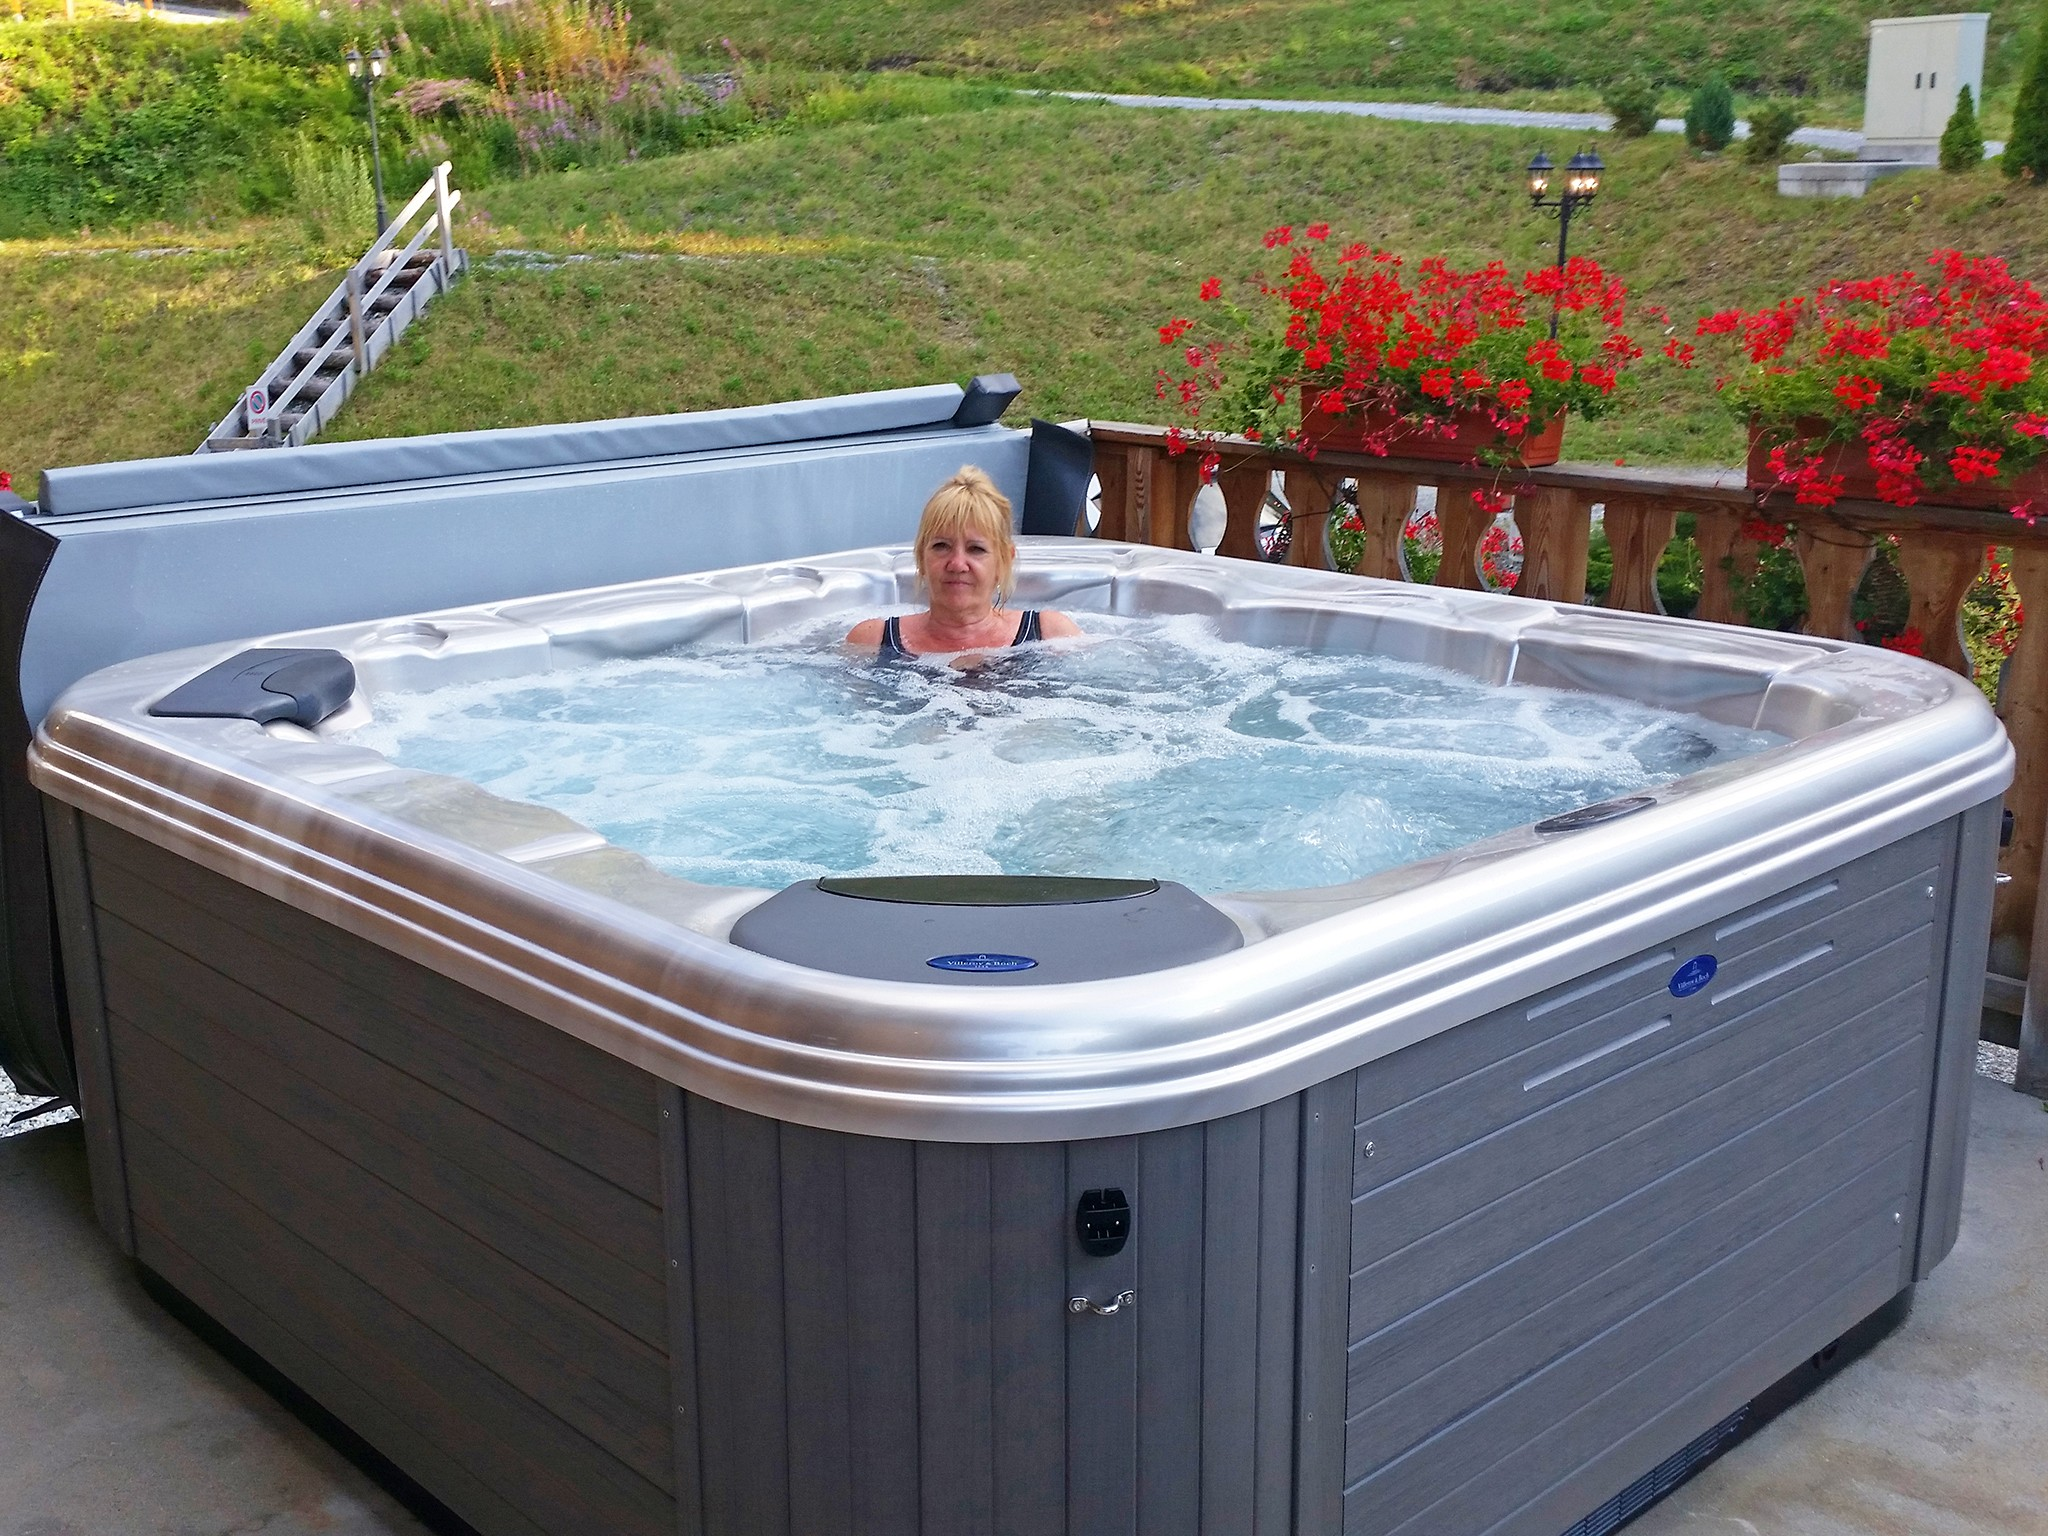 Chalet Charmille - Whirlpool